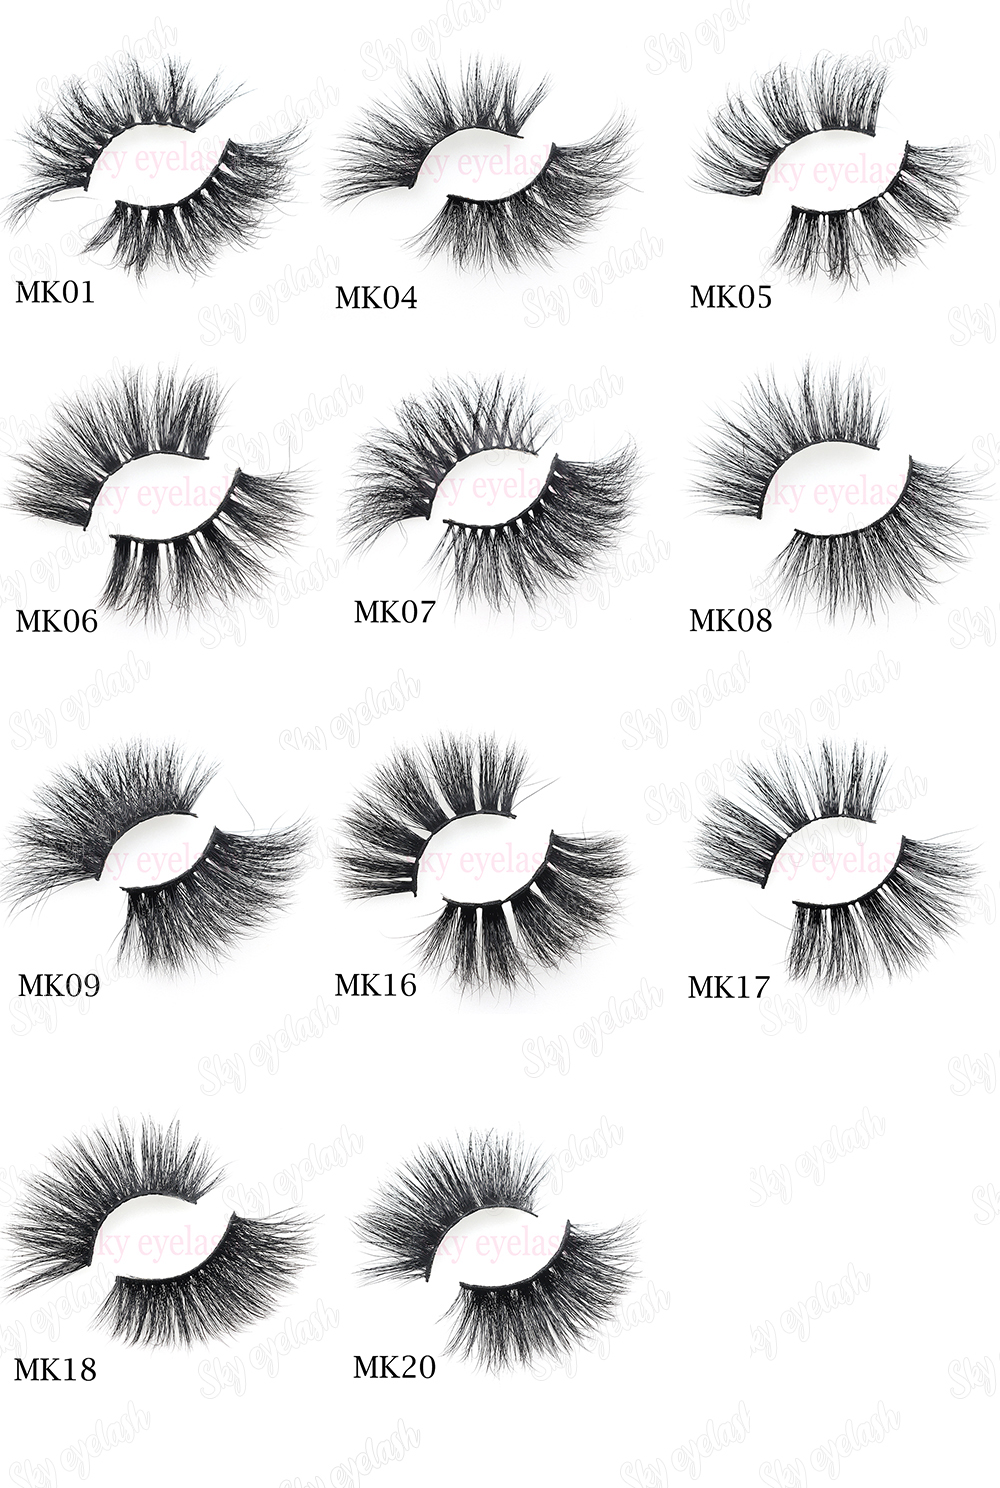 Wholesale-lash-vendor-handmade-3d-25mm-long-mink-lashes-with-oem-lash-cases.jpg